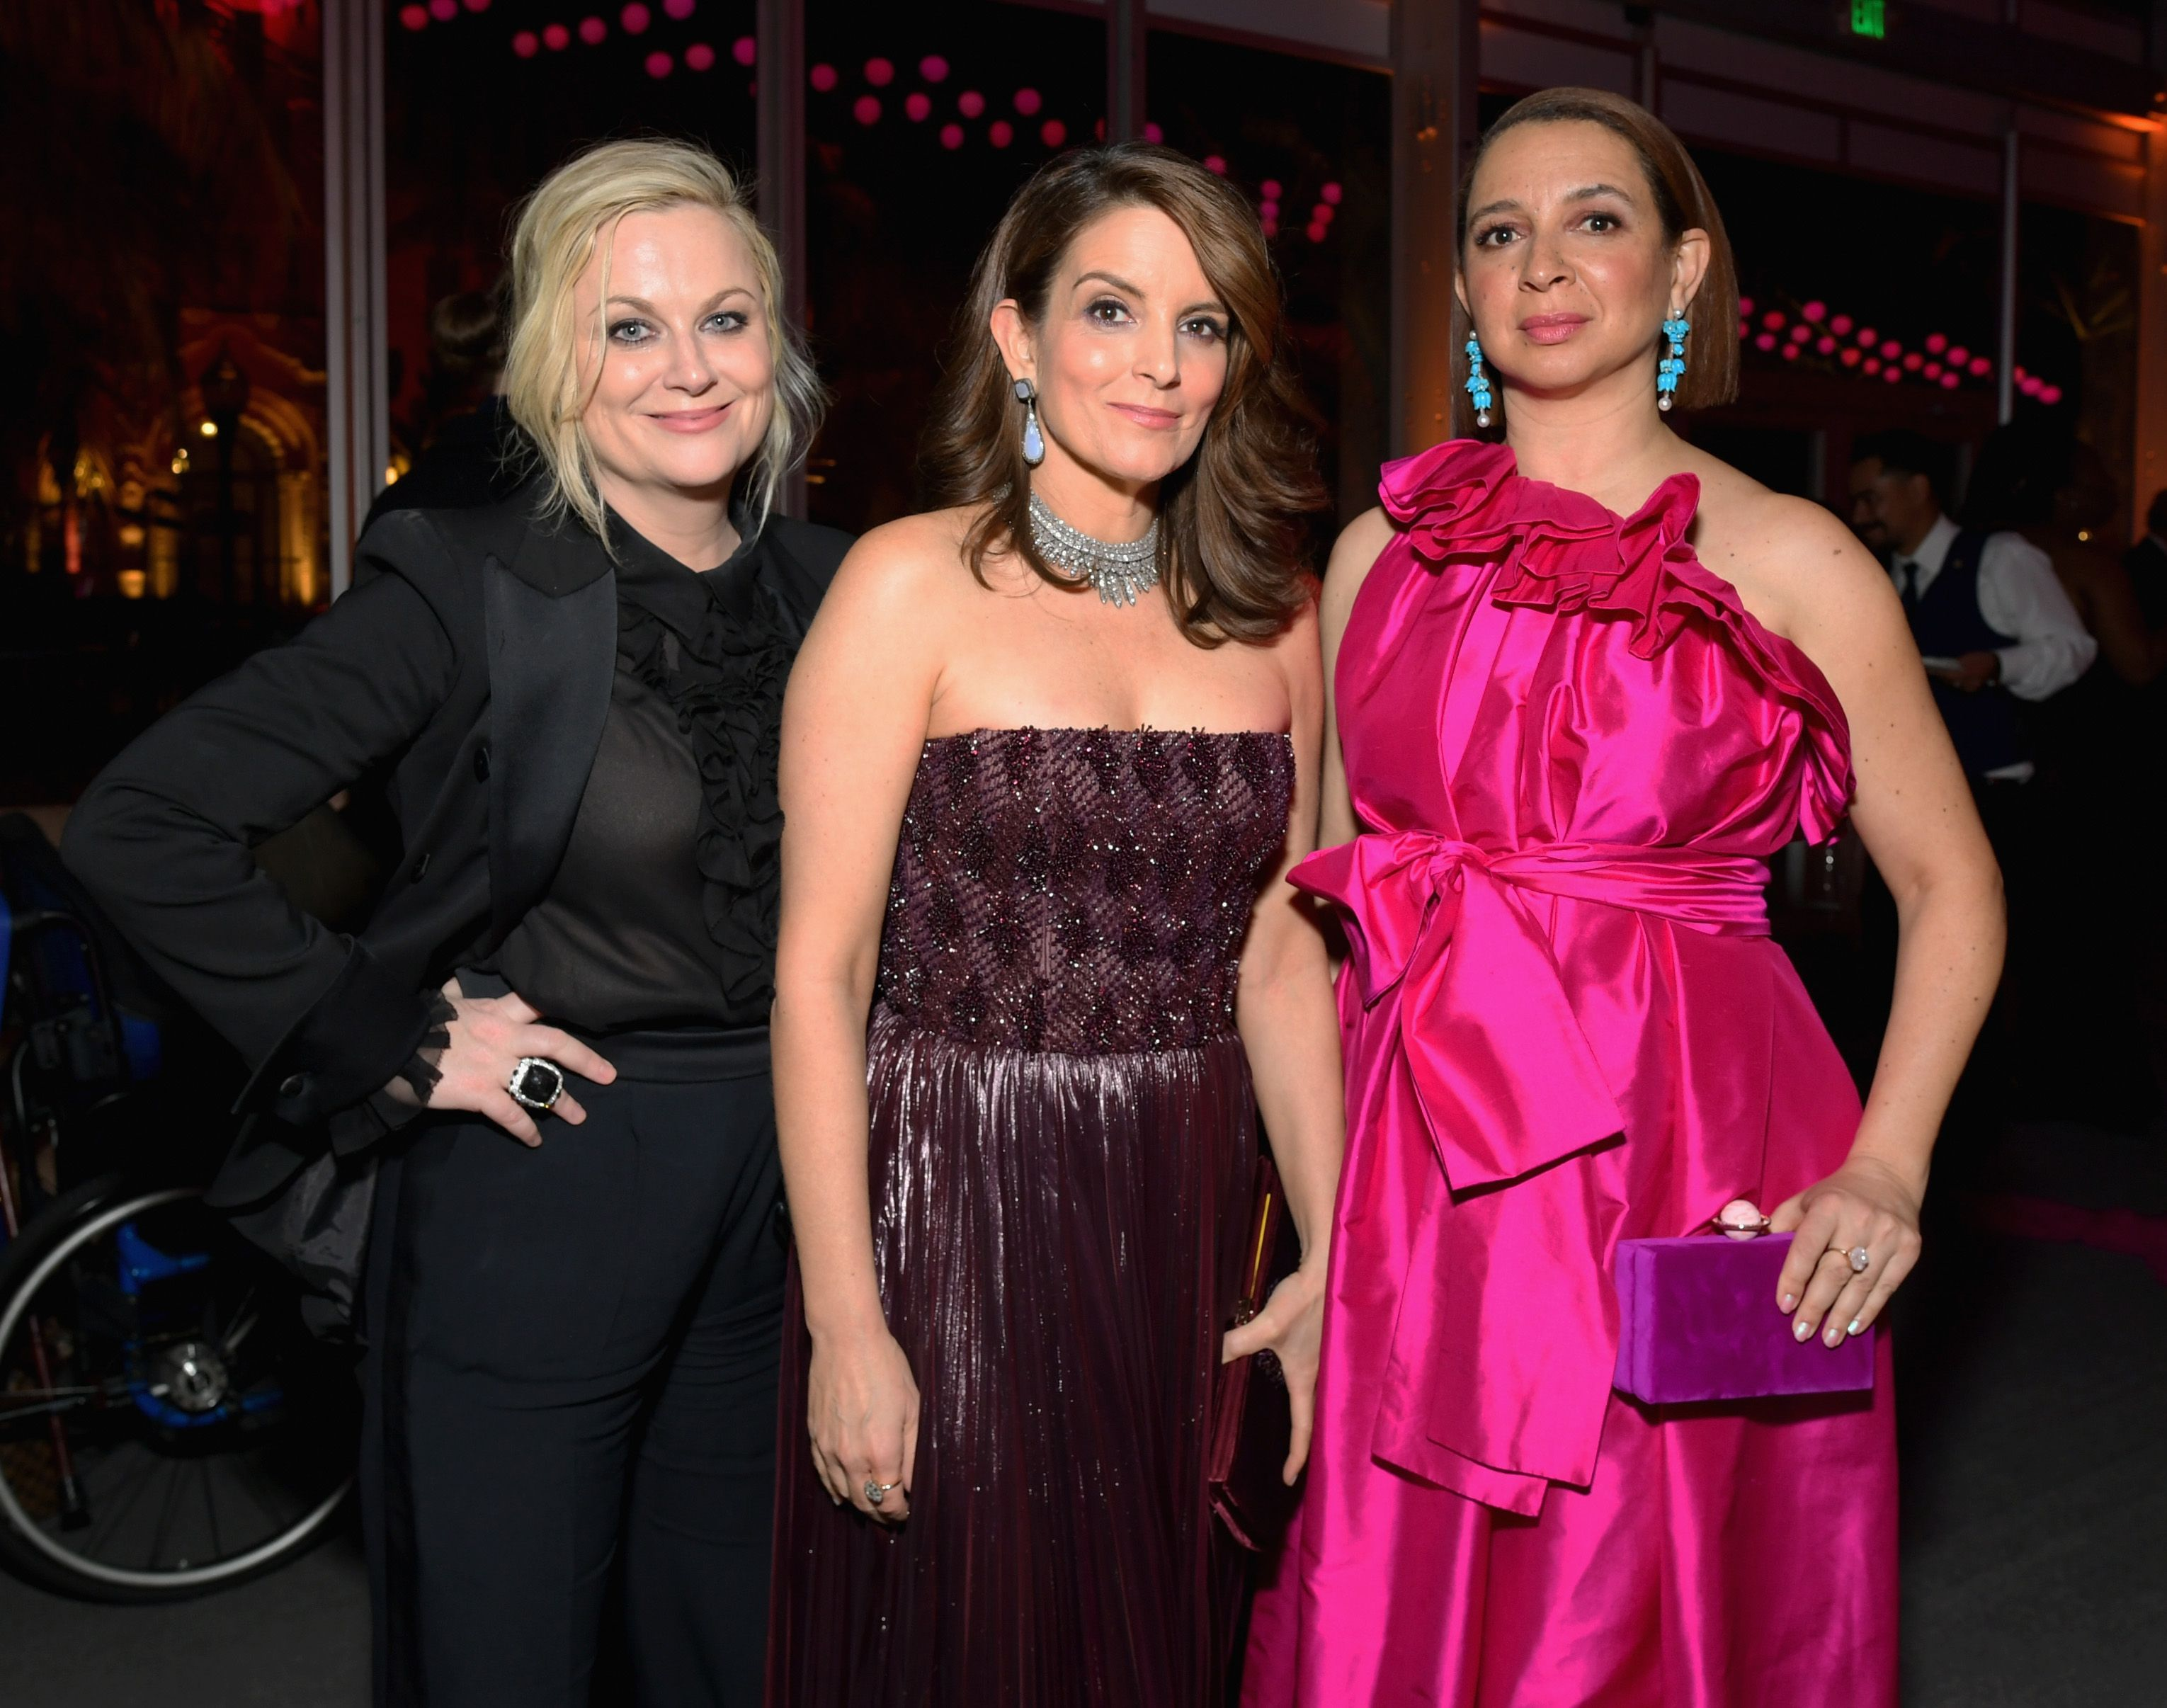 Amy Poehler's New Netflix Movie 'Wine Country' Is Based on Actual Vacations With 'SNL' Friends